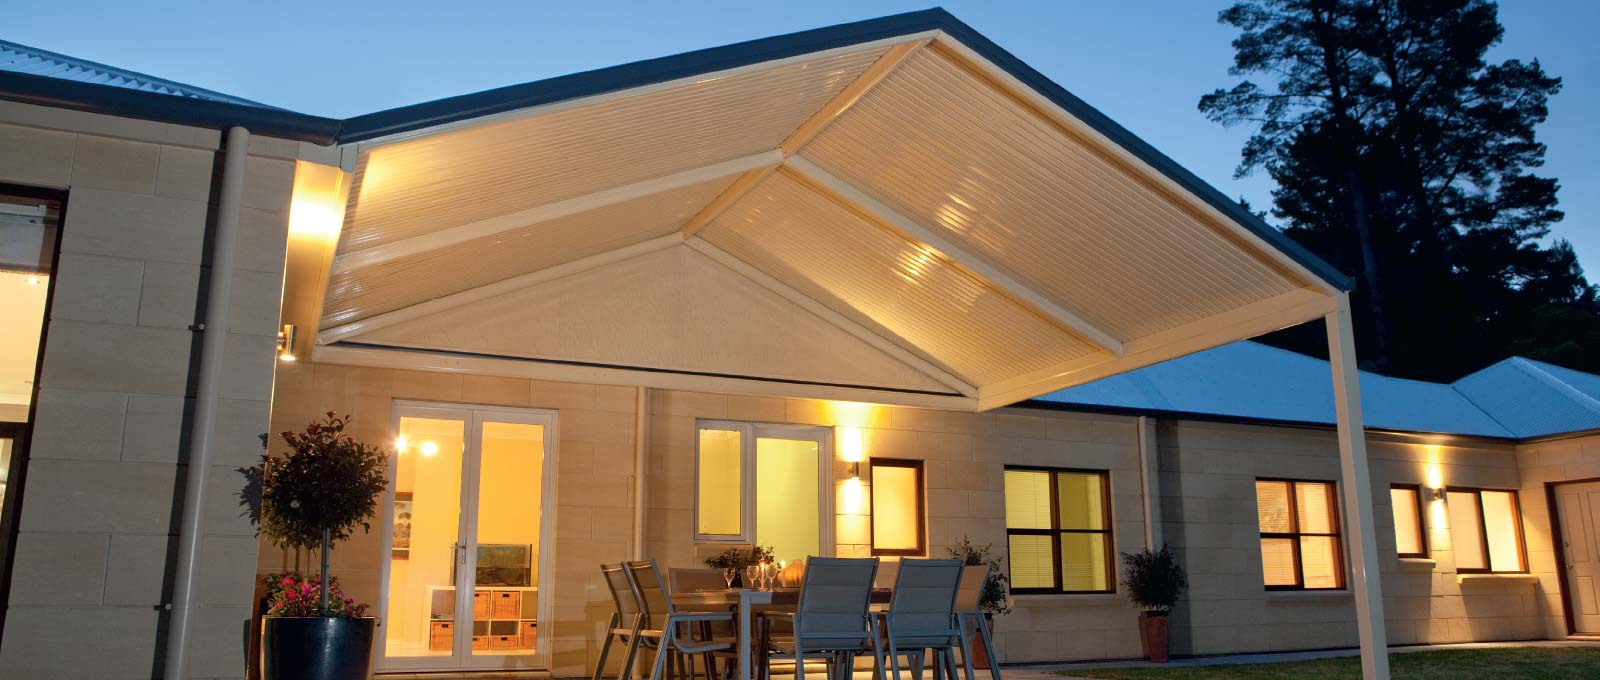 Patios Verandah Carport Outback Gable Page